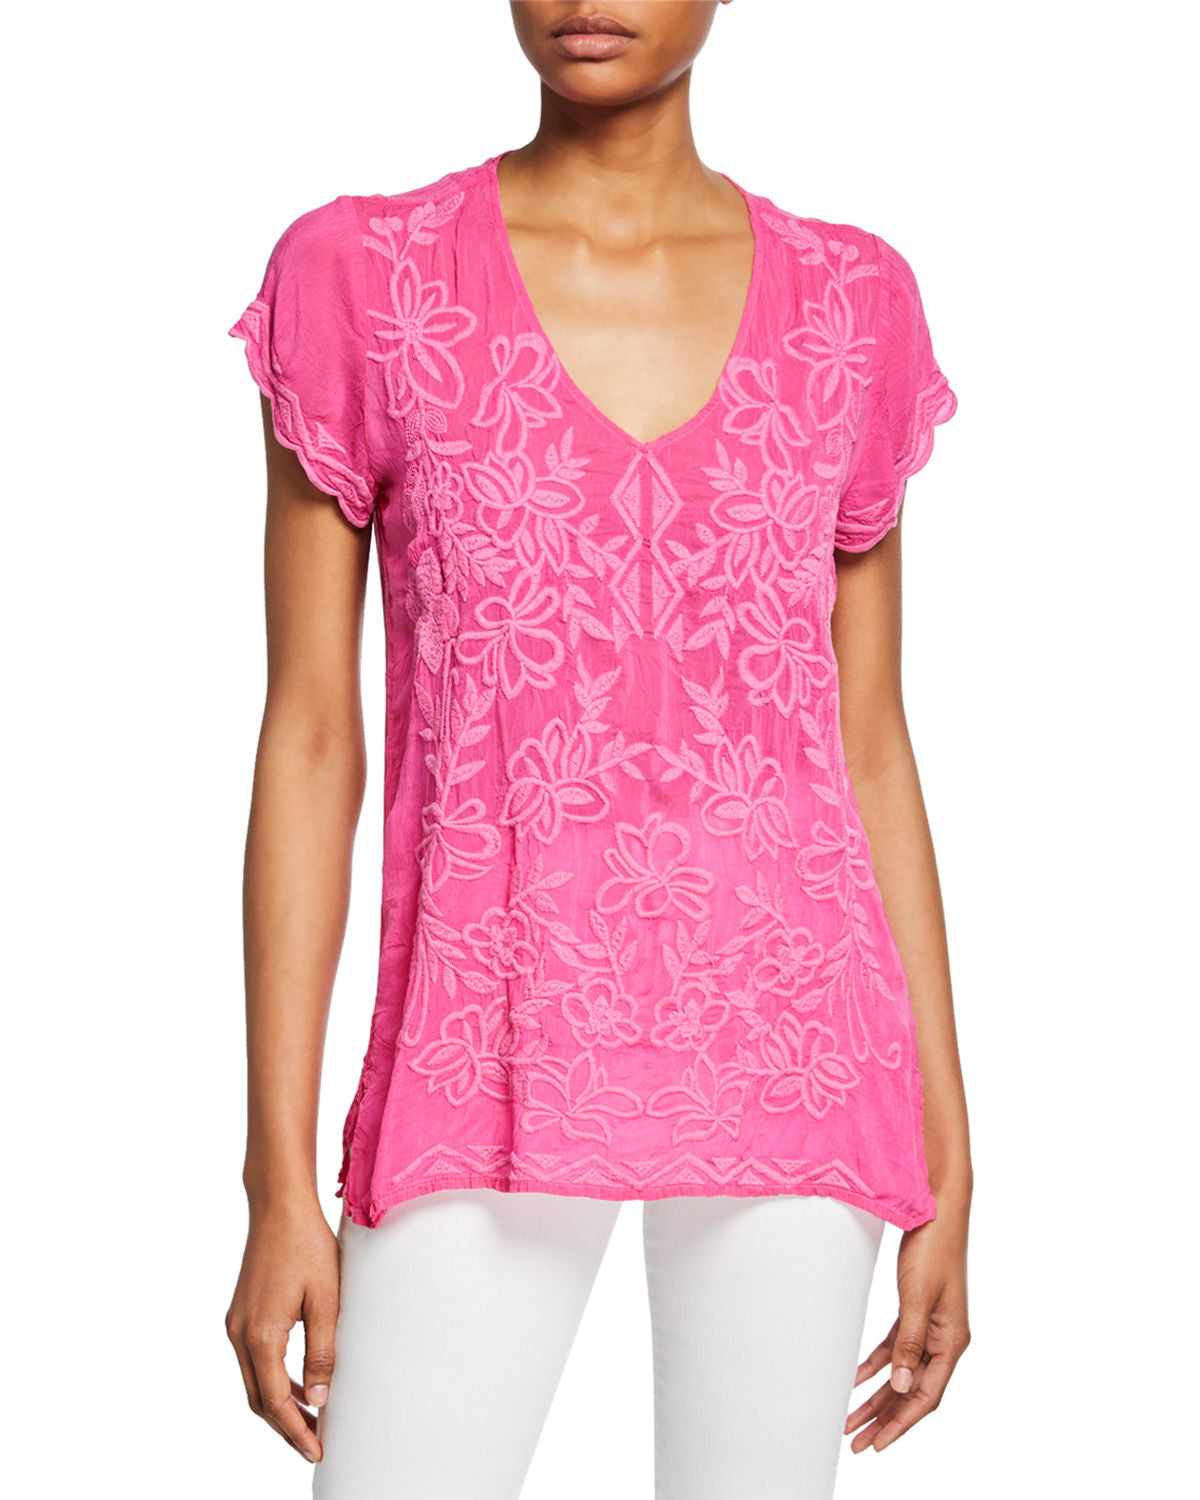 Johnny Was Pink/Fuchsia Burke Cap Sleeve Top